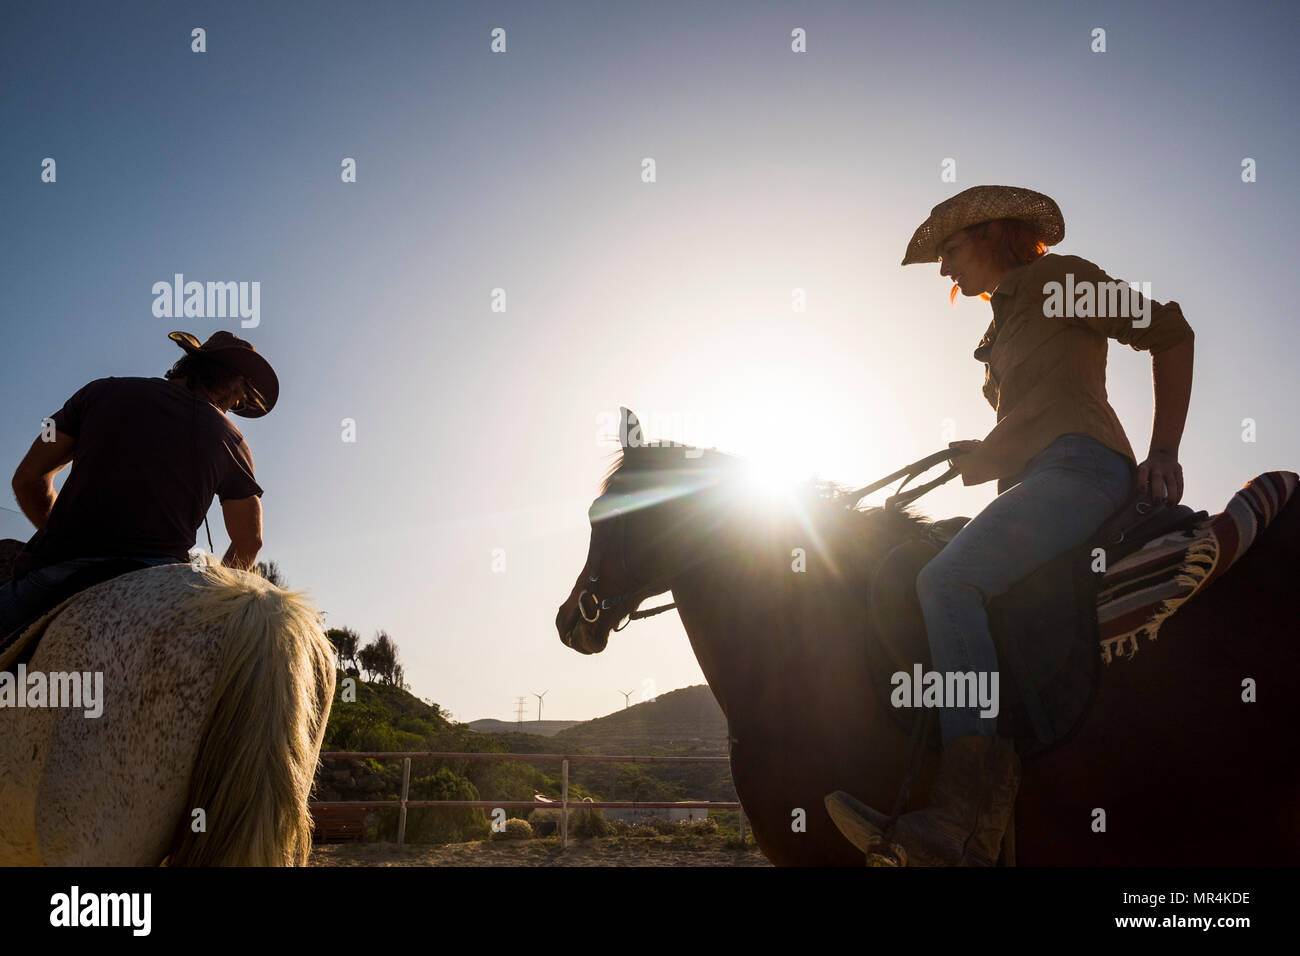 couple of modern cowboys man and woman ride two horses outdoor with sunflare and backlight. mountains and wind mill in background. nice young on vacat - Stock Image